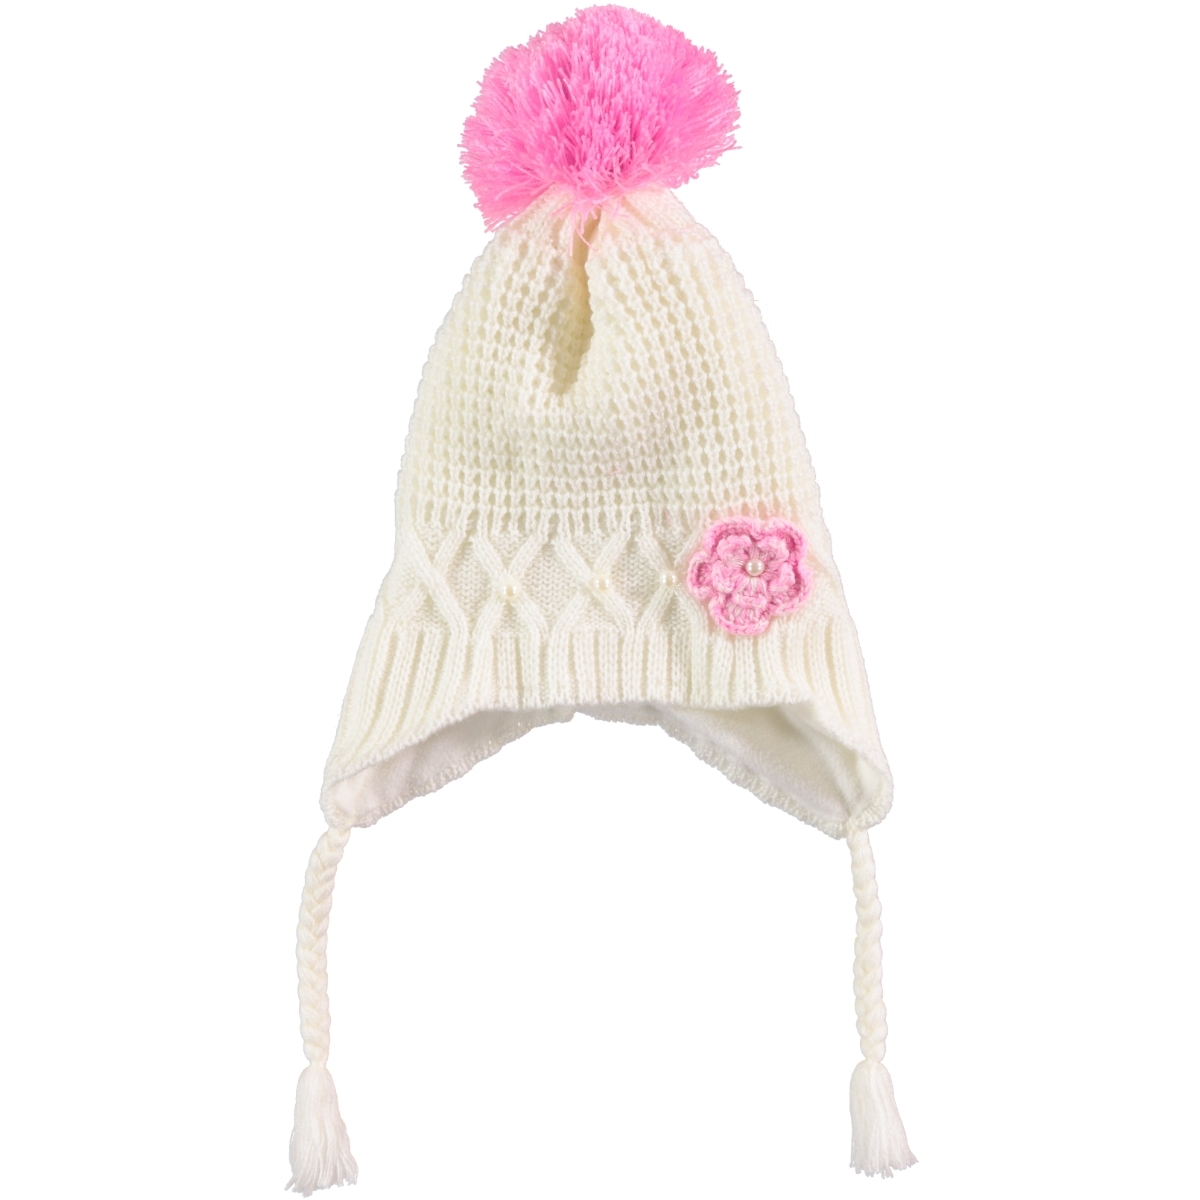 Kitti Ecru Hat Boy Girl Ages 4-8